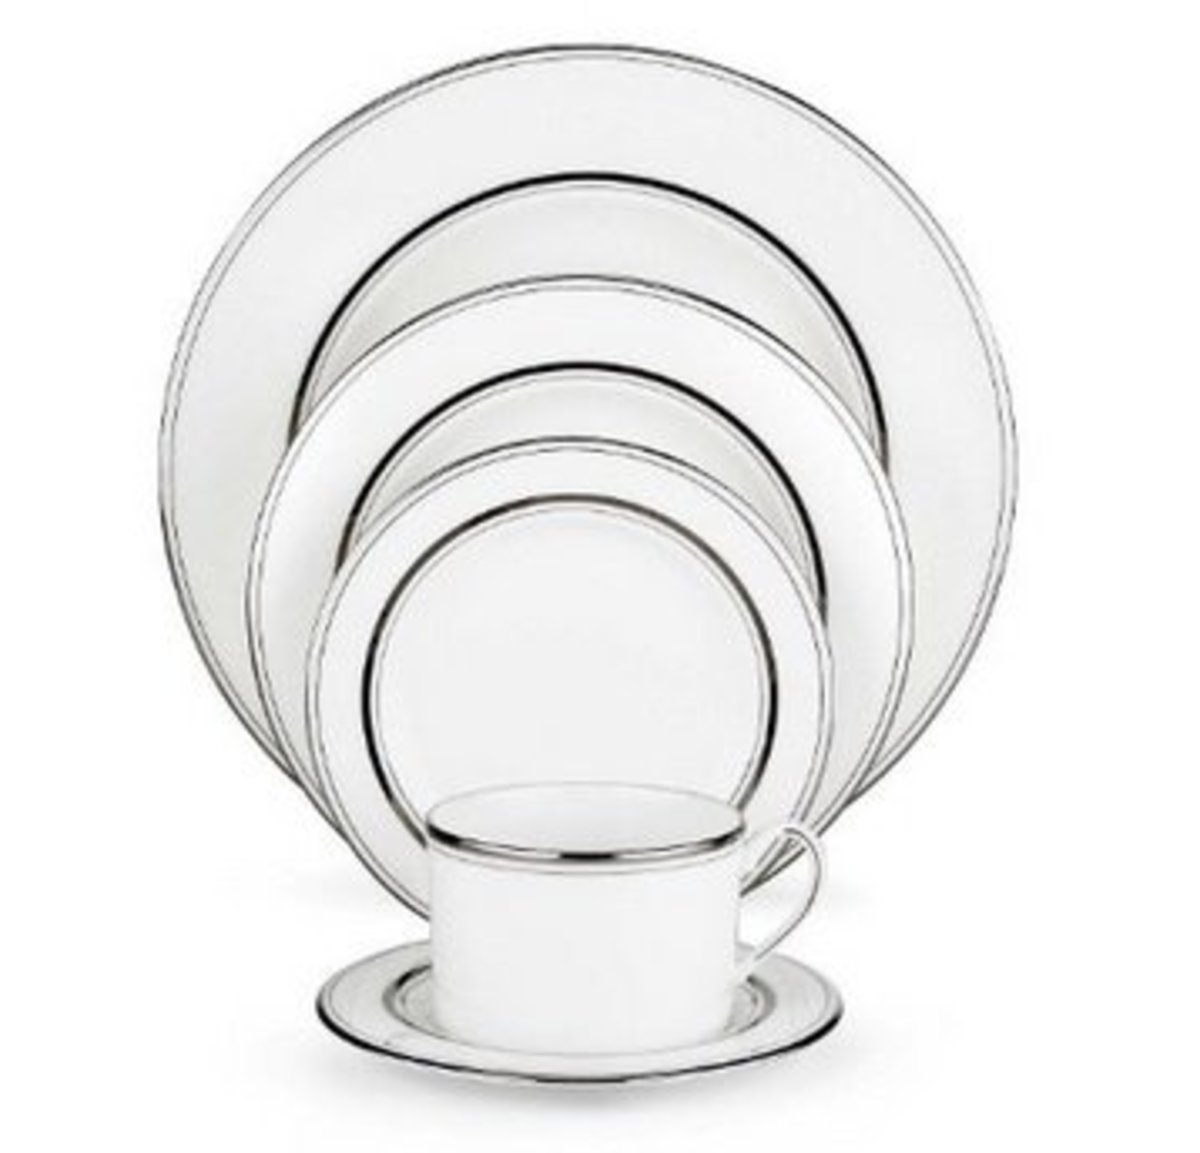 Sophisticated and Modern American Made Dinnerware.